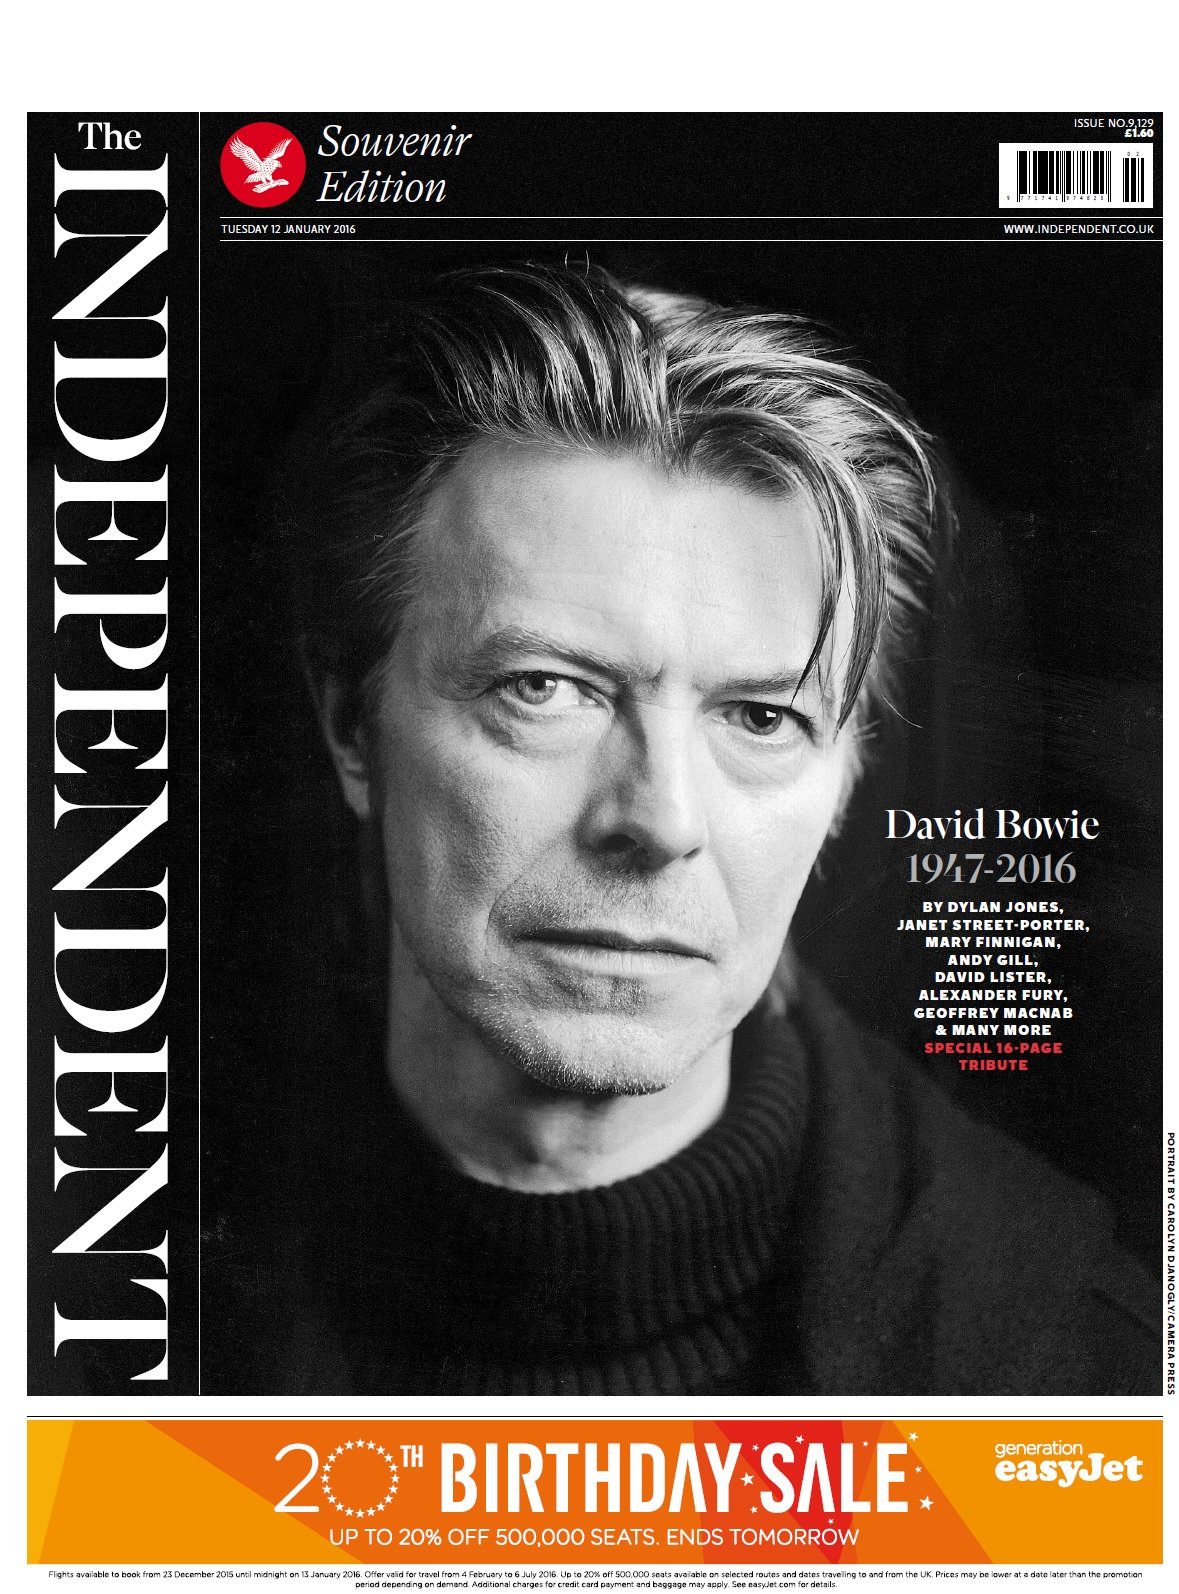 Tuesday's Independent front page: David Bowie 1947-2016 #tomorrowspaperstoday #bbcpapers https://t.co/WoA5KvHia1